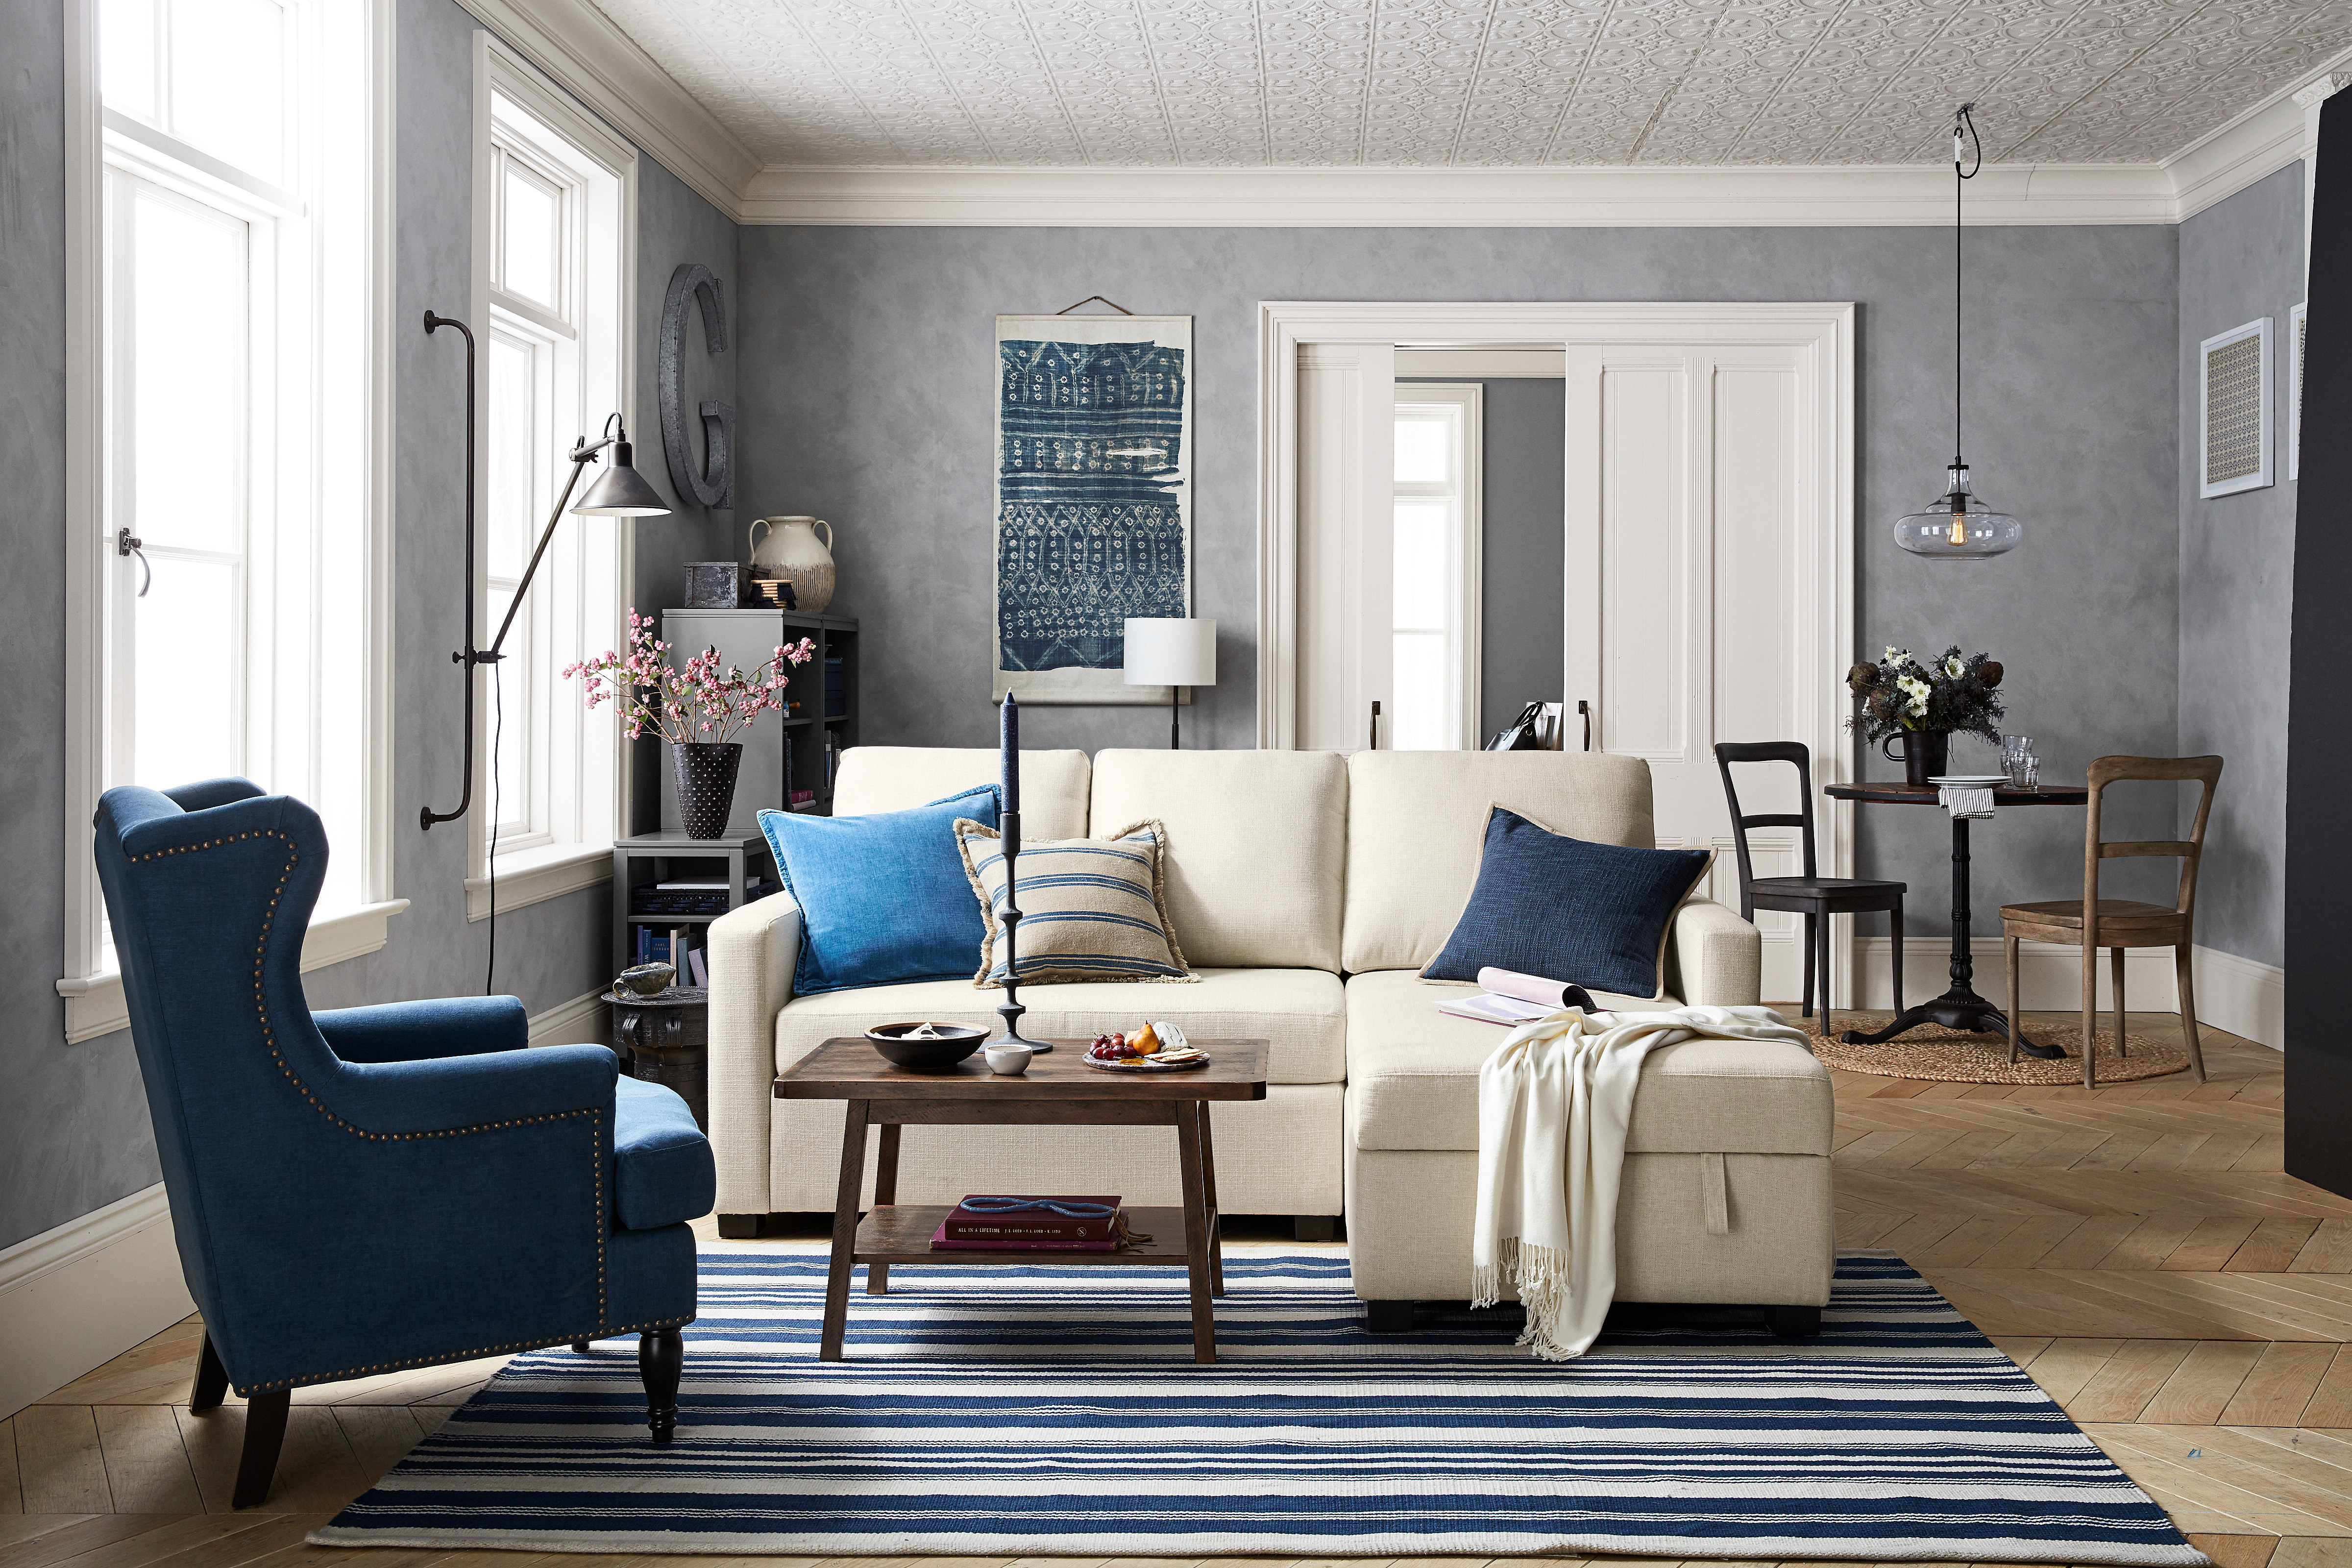 bellevue-upholstered-sofa-with-storage-by-pottery-barn-photo-business-wire